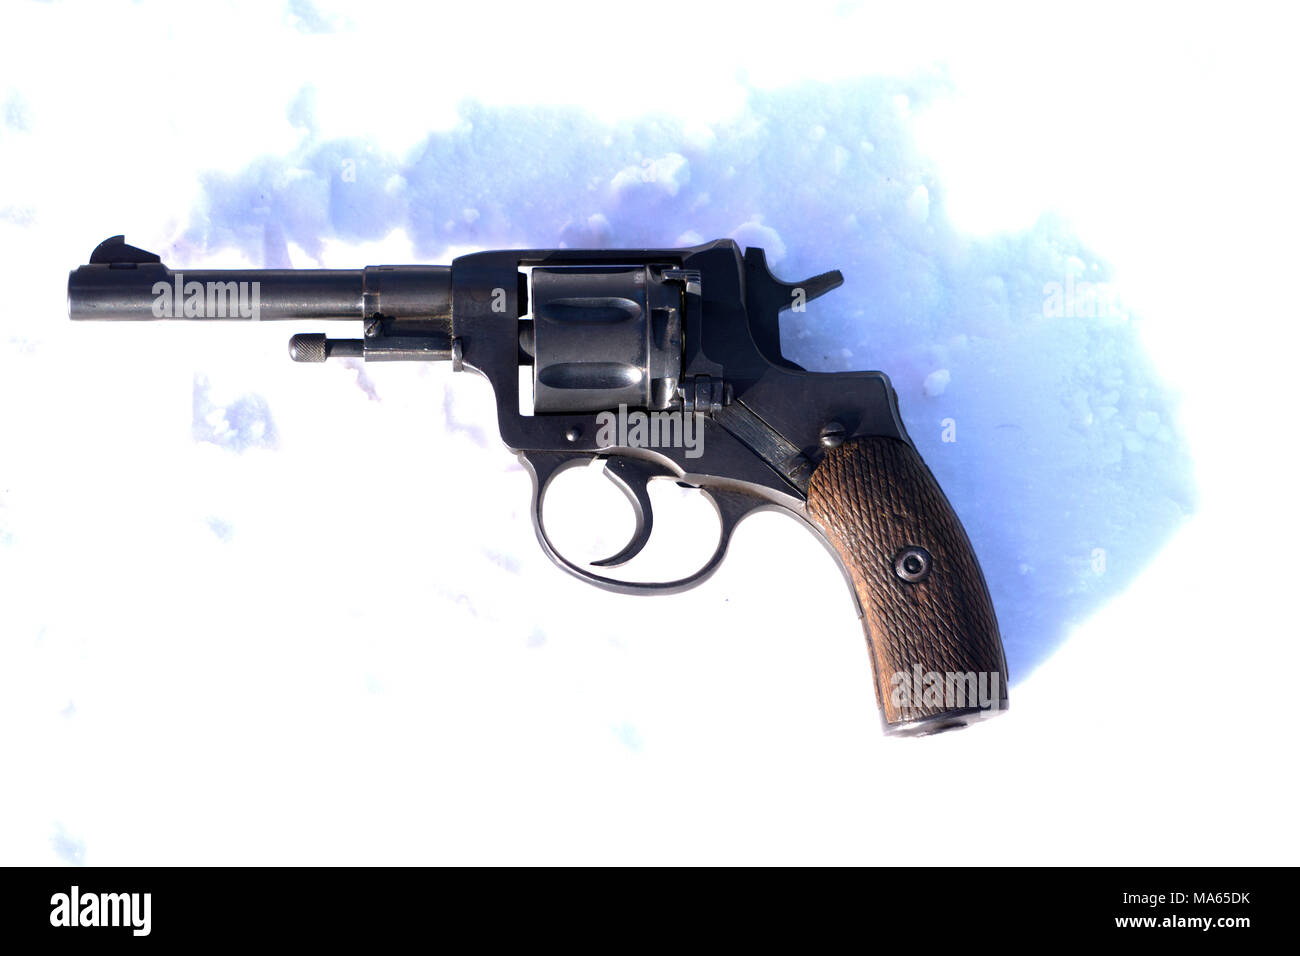 Mini Revolver with wooden grip on the blacket of snow - Stock Image